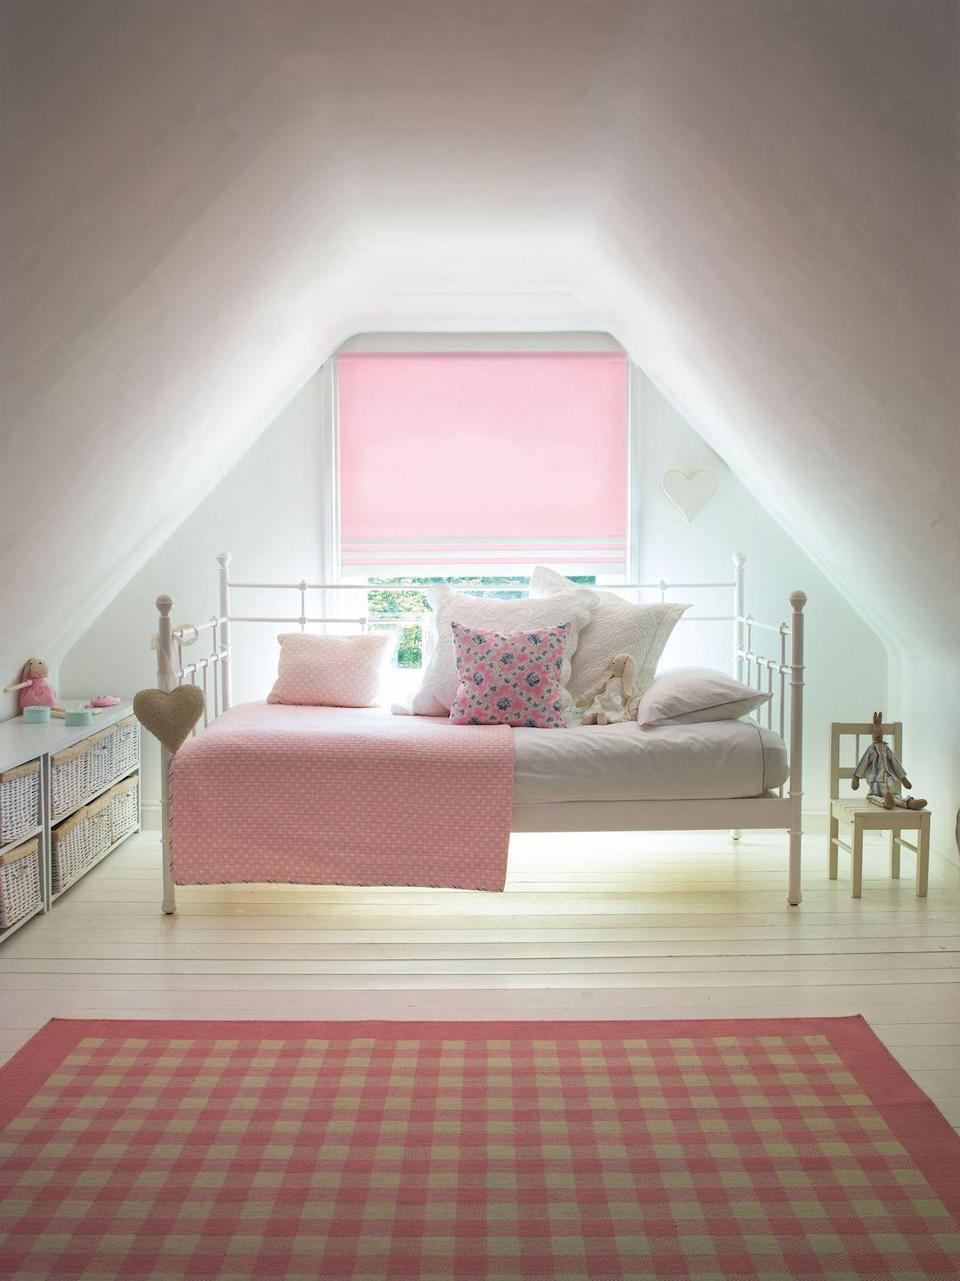 """<p><a href=""""https://www.housebeautiful.com/uk/renovate/build/a1789/rooms-to-consider-renovating-home/"""" rel=""""nofollow noopener"""" target=""""_blank"""" data-ylk=""""slk:Loft extensions"""" class=""""link rapid-noclick-resp"""">Loft extensions</a> make great bedrooms for those who are slightly older – at the top of the house there's a feeling of independence and being slightly away from the parents! Loft bedrooms can be dark though, so opting for white walls and floors can be a great idea, then, what light does come through can be bounced about by the white. Place the bed in the most prominent position and use the lower sides for storage. Add in some pattern with checks, spots and florals and choose a blind to match.</p><p>Pictured: Splash Blush blind, <a href=""""https://www.swiftdirectblinds.co.uk/vertical-blinds/splash-blush-pink/"""" rel=""""nofollow noopener"""" target=""""_blank"""" data-ylk=""""slk:Swift Blinds"""" class=""""link rapid-noclick-resp"""">Swift Blinds</a></p>"""